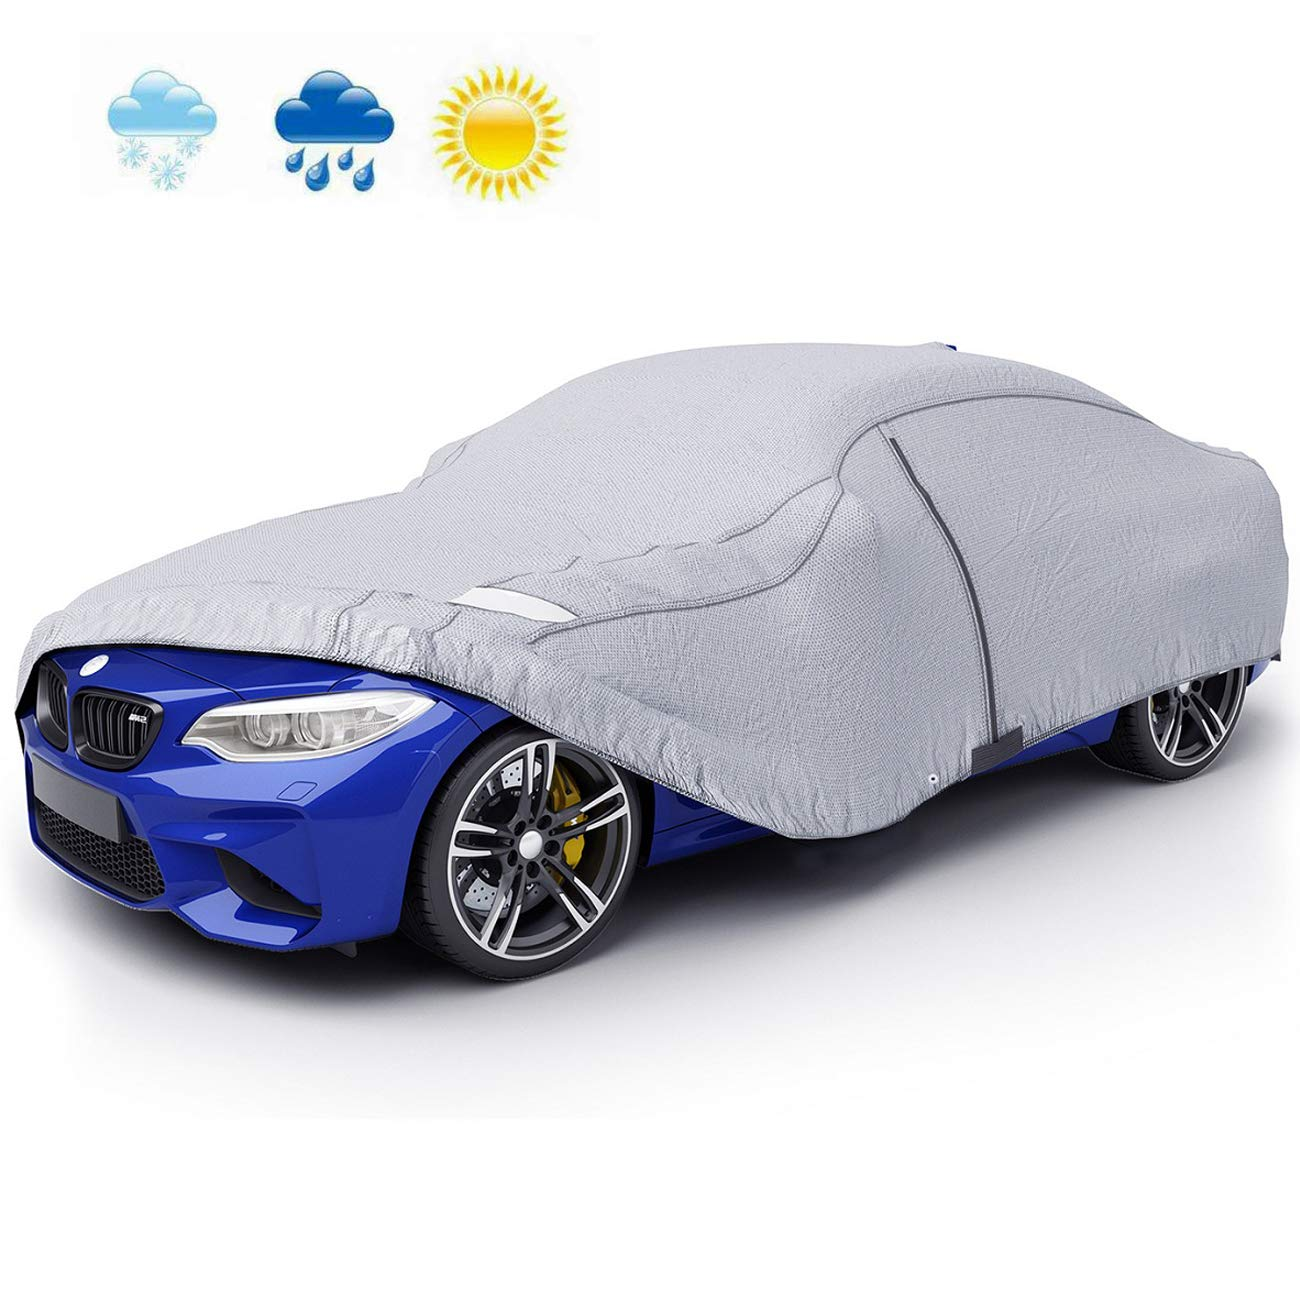 VETOMILE Car Cover Waterproof UV Protection Breathable Outdoor Indoor Sedan  Cover for All Weather with Door Zippered Opening for Easy Access(470 * 180